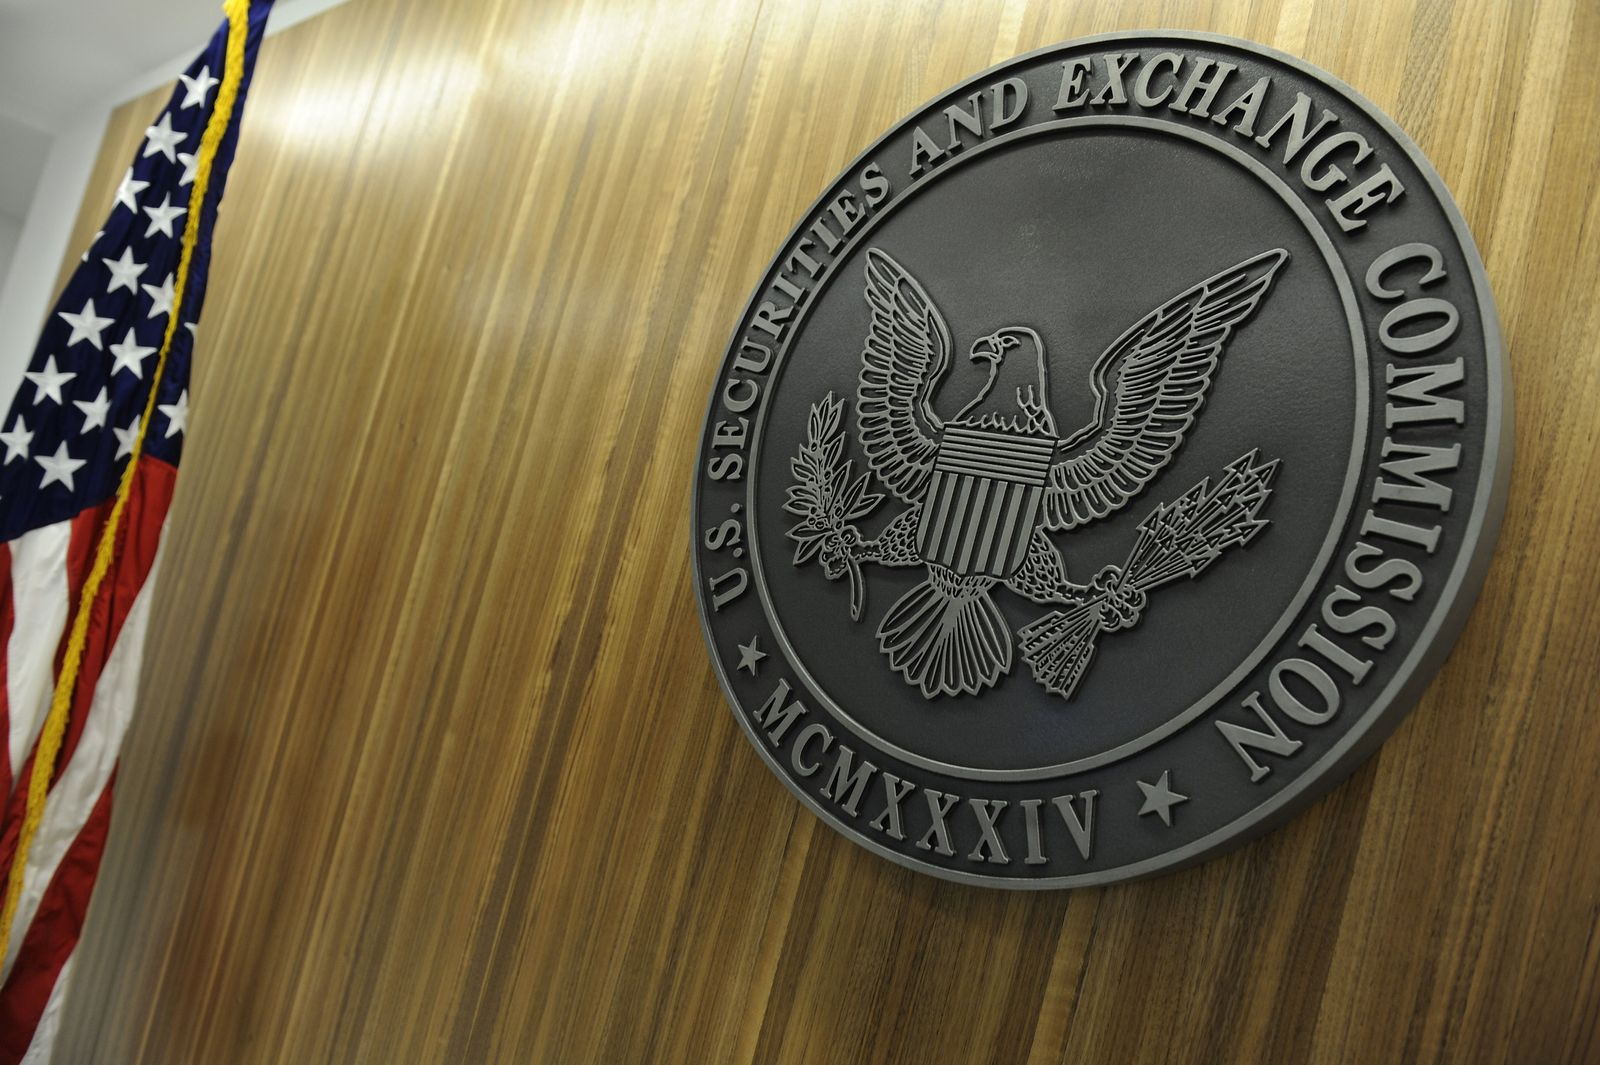 Securities and Exchange Commission / Logo